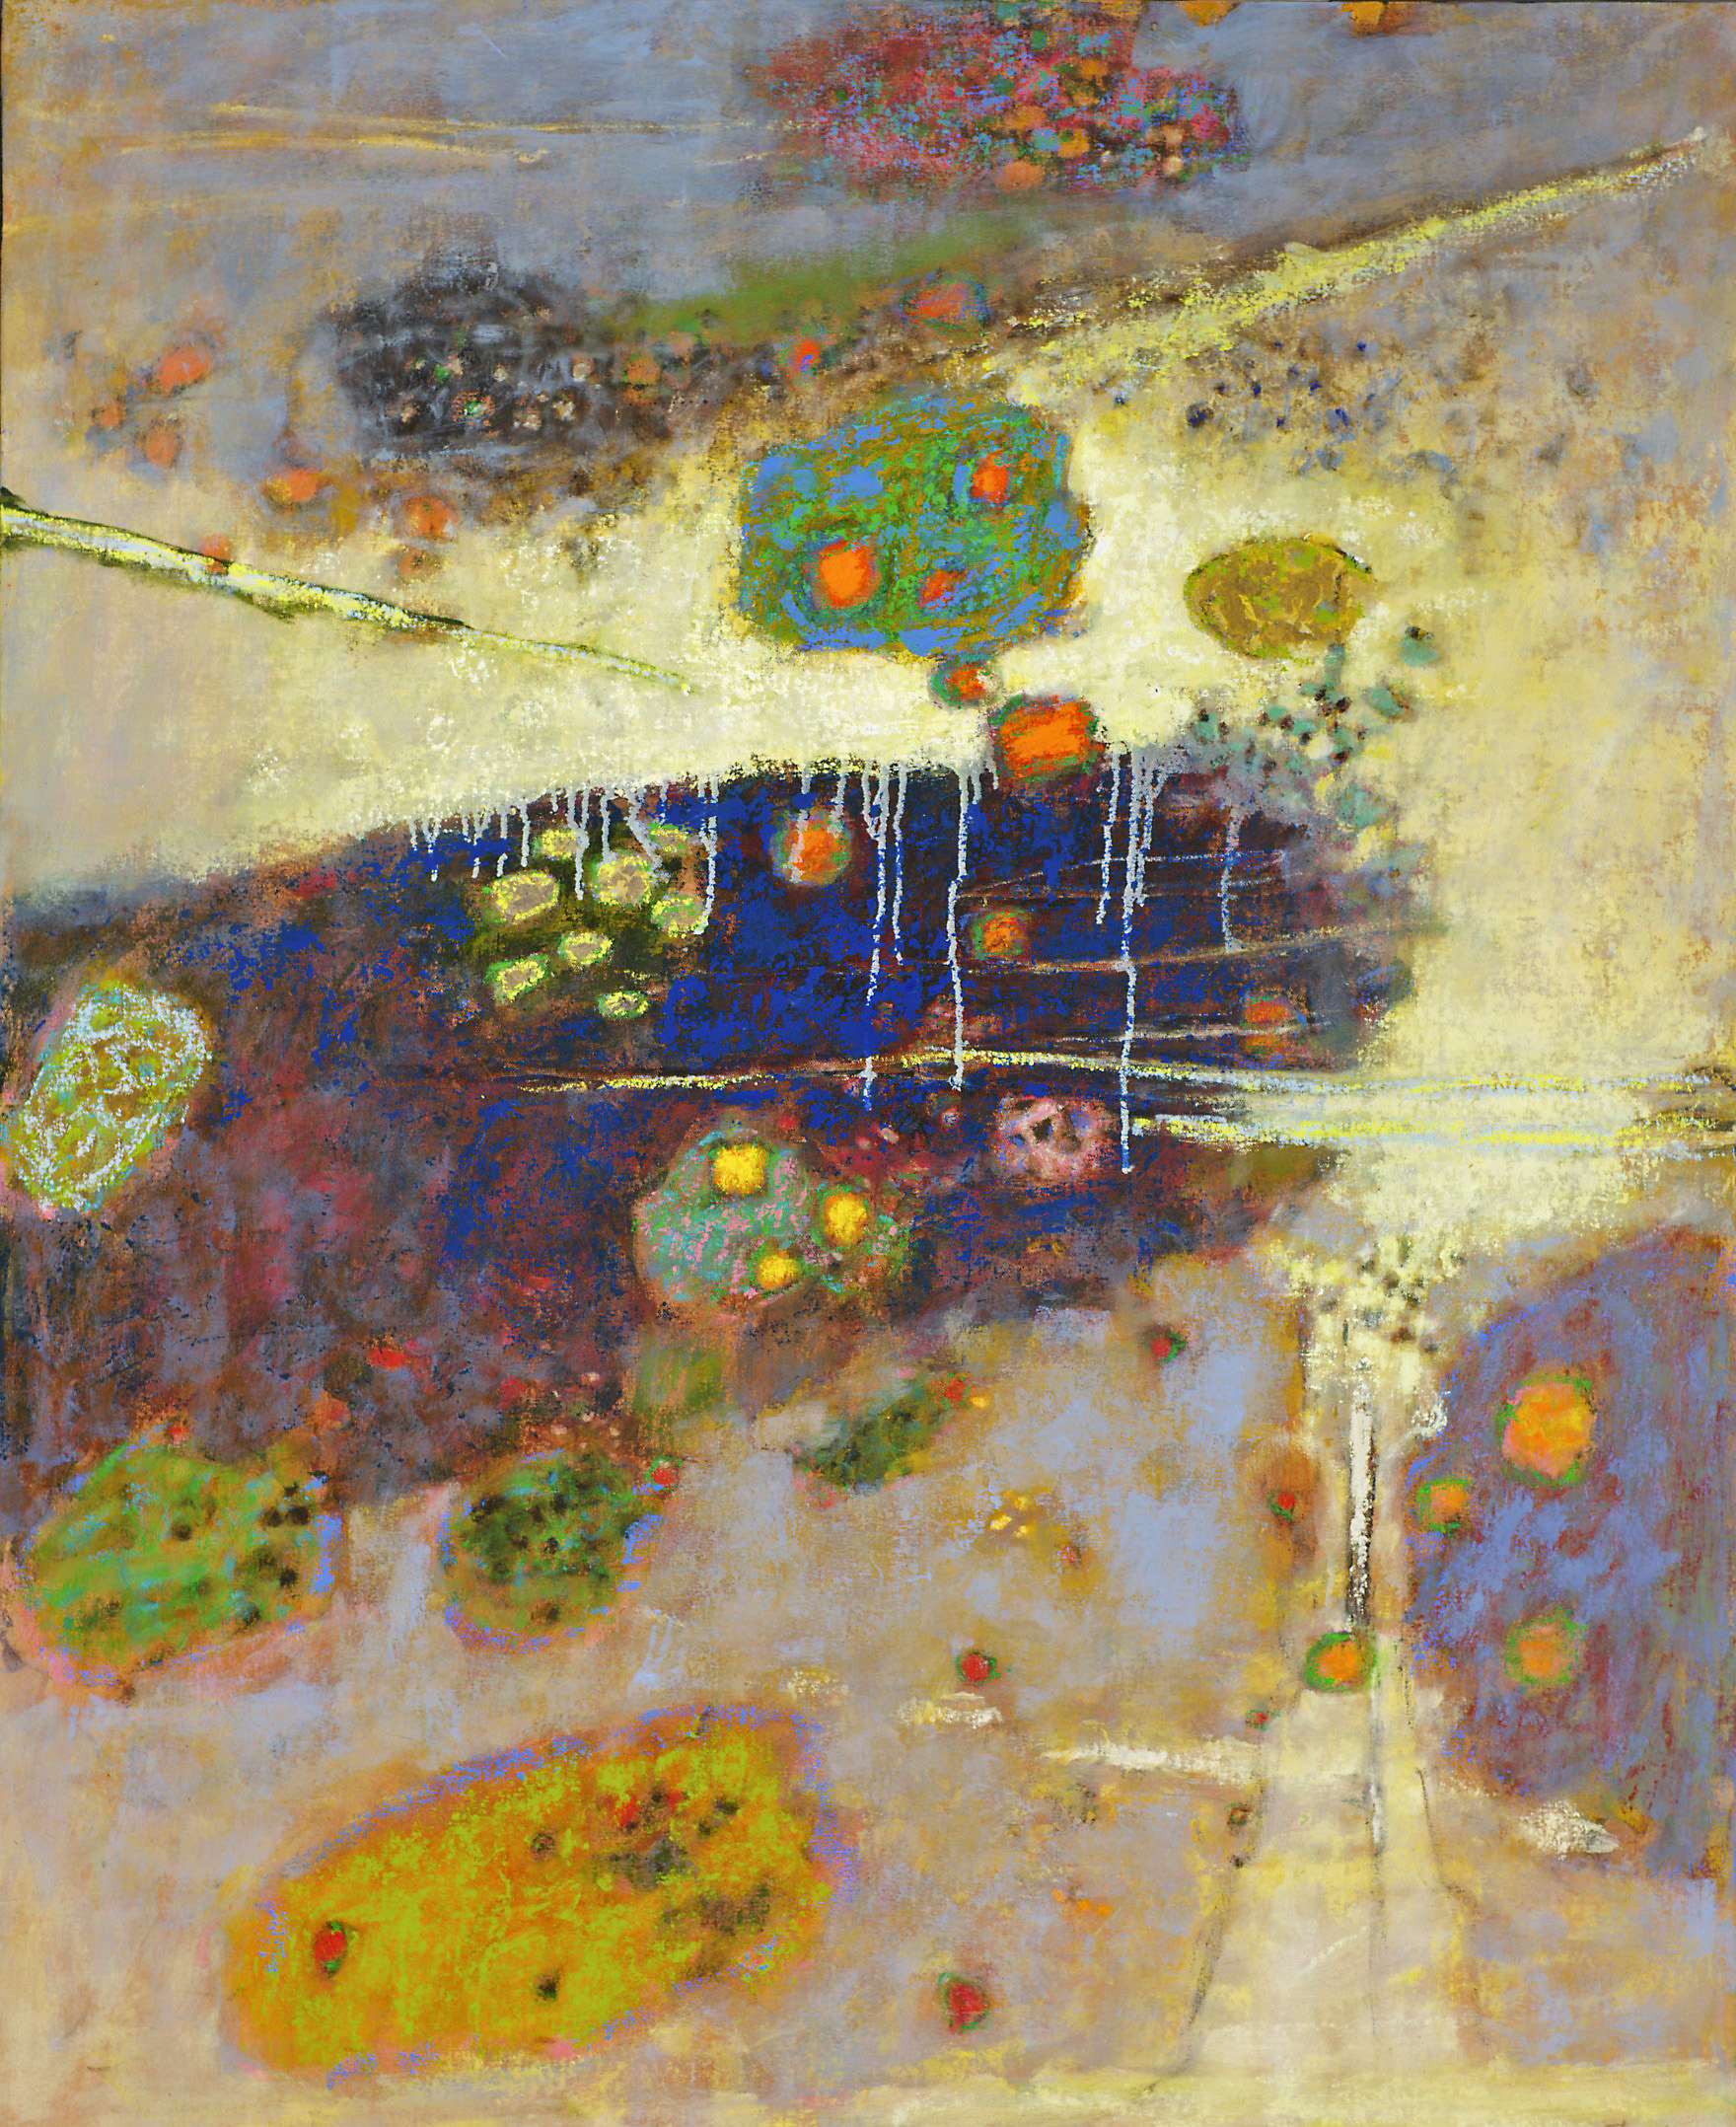 Alchemy   | oil on canvas | 44 x 36"